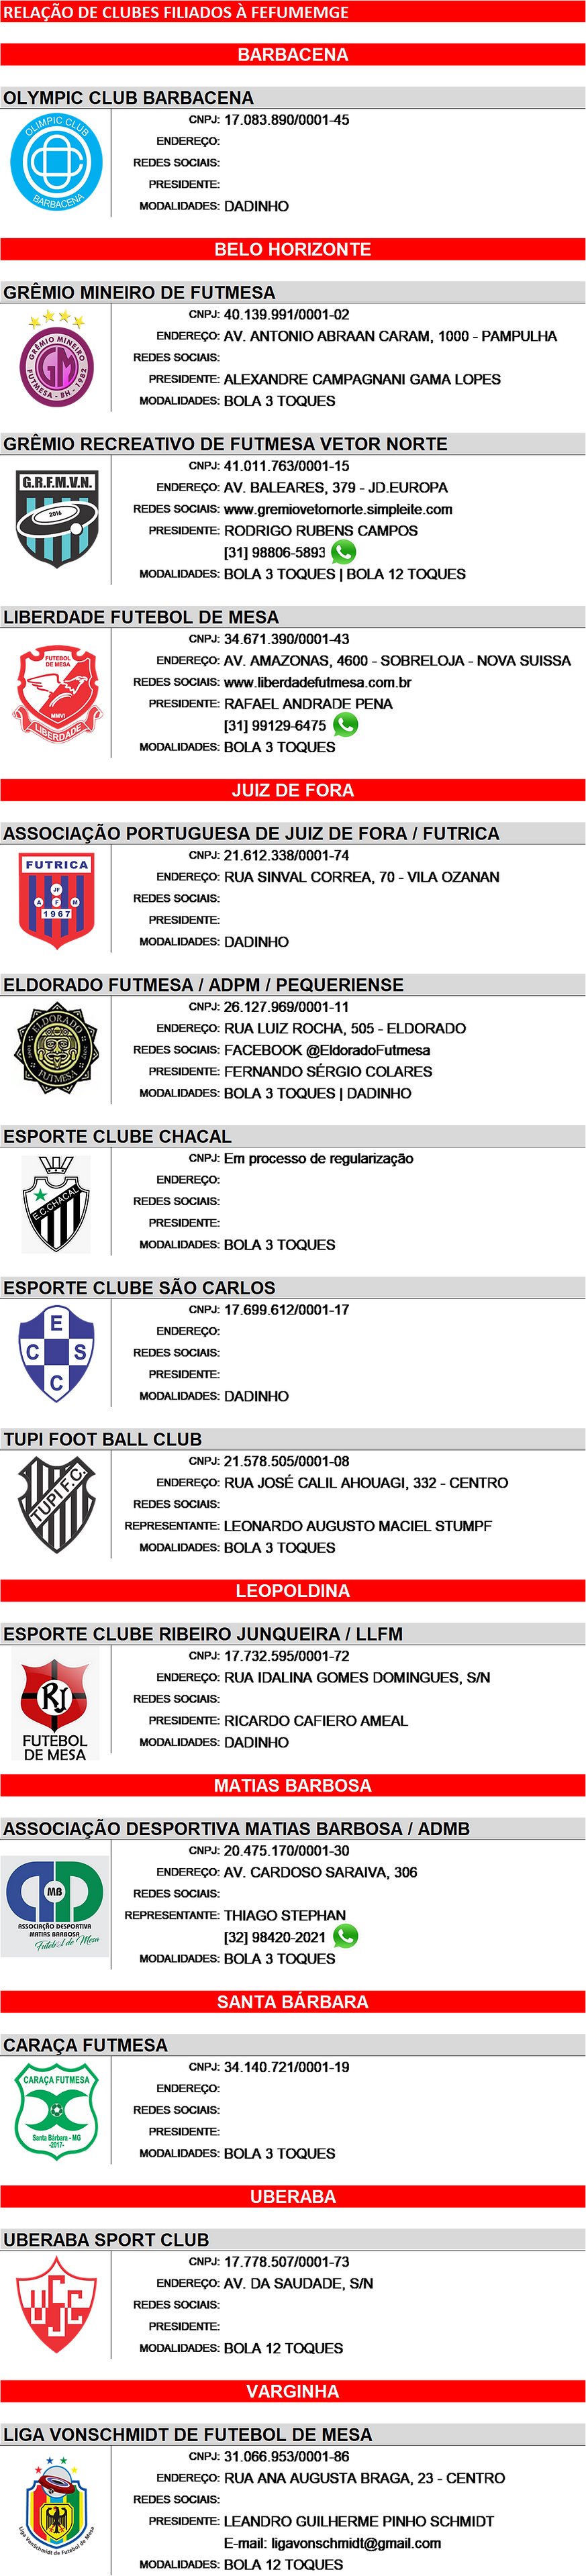 2021 clubes 17 03 2021.png